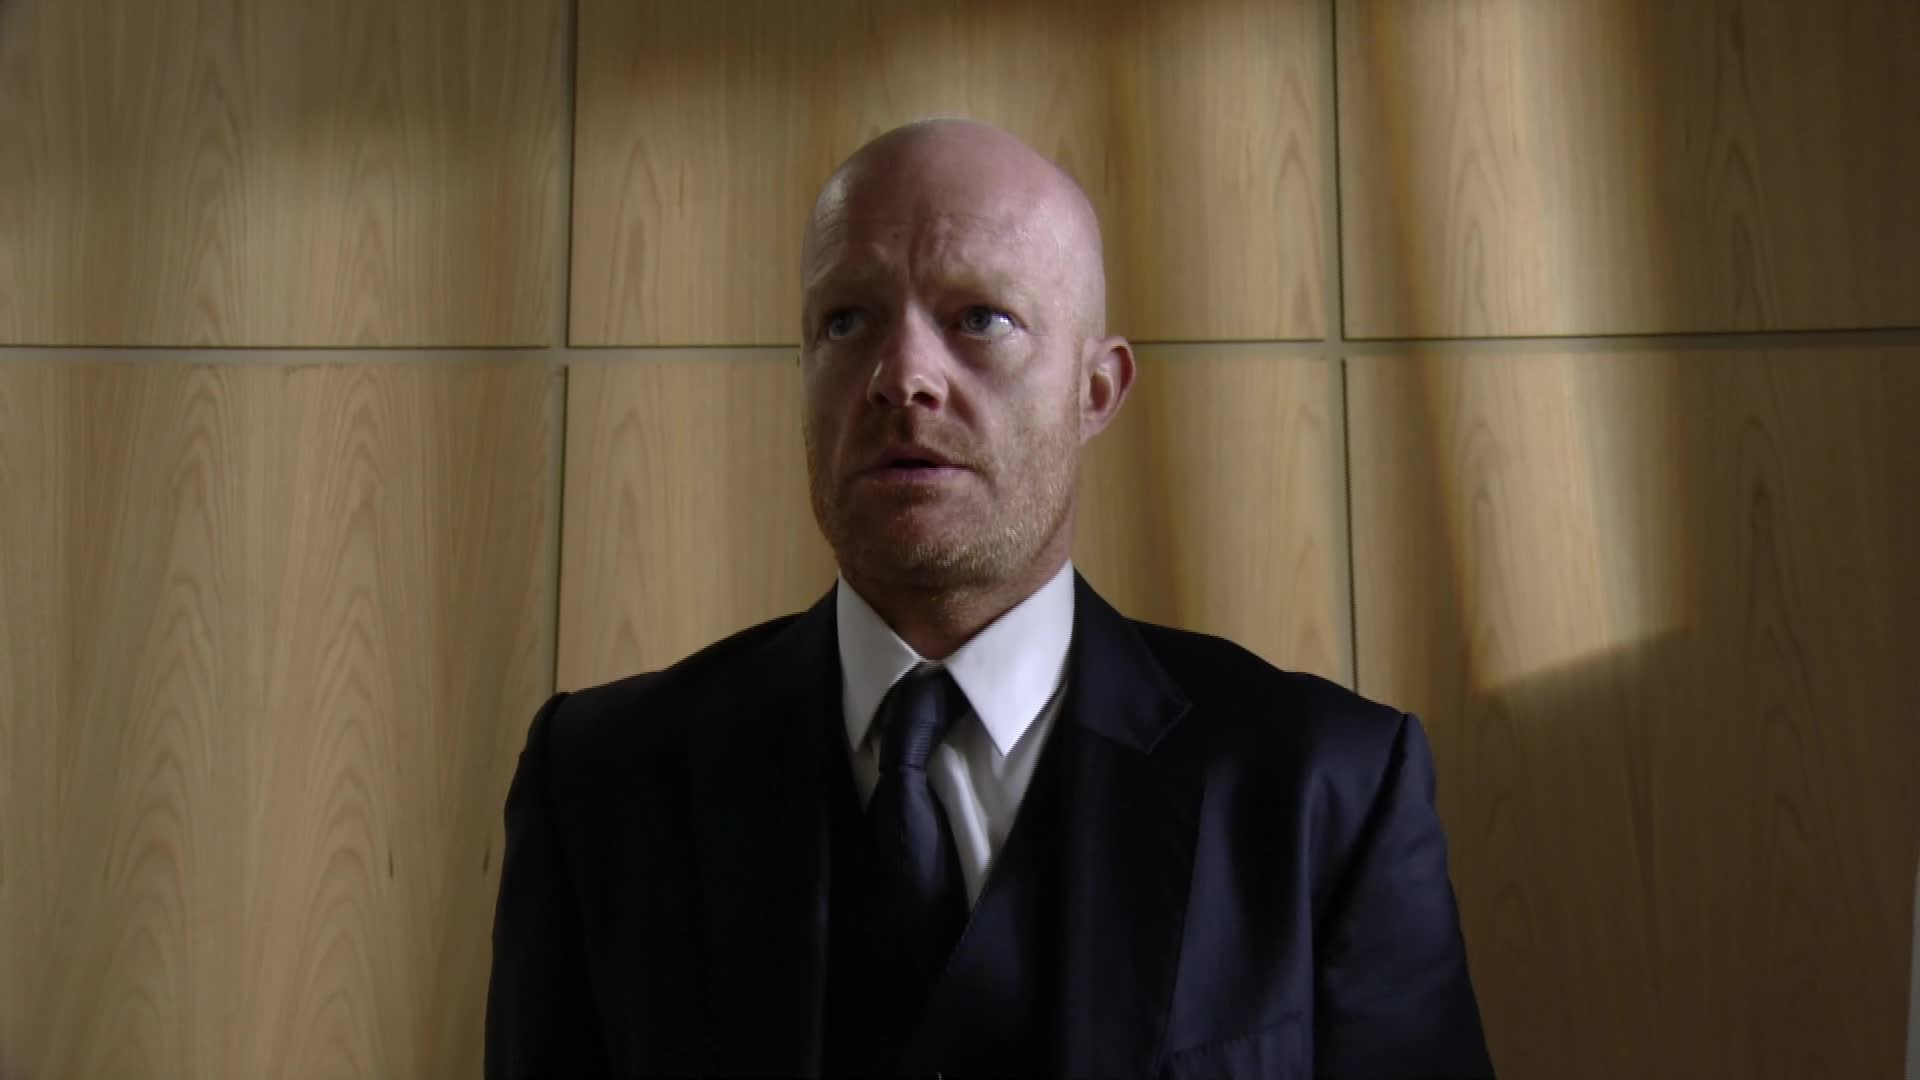 Jake Wood warns EastEnders' Lucy Beale story could go on for another year following Max Branning's escape